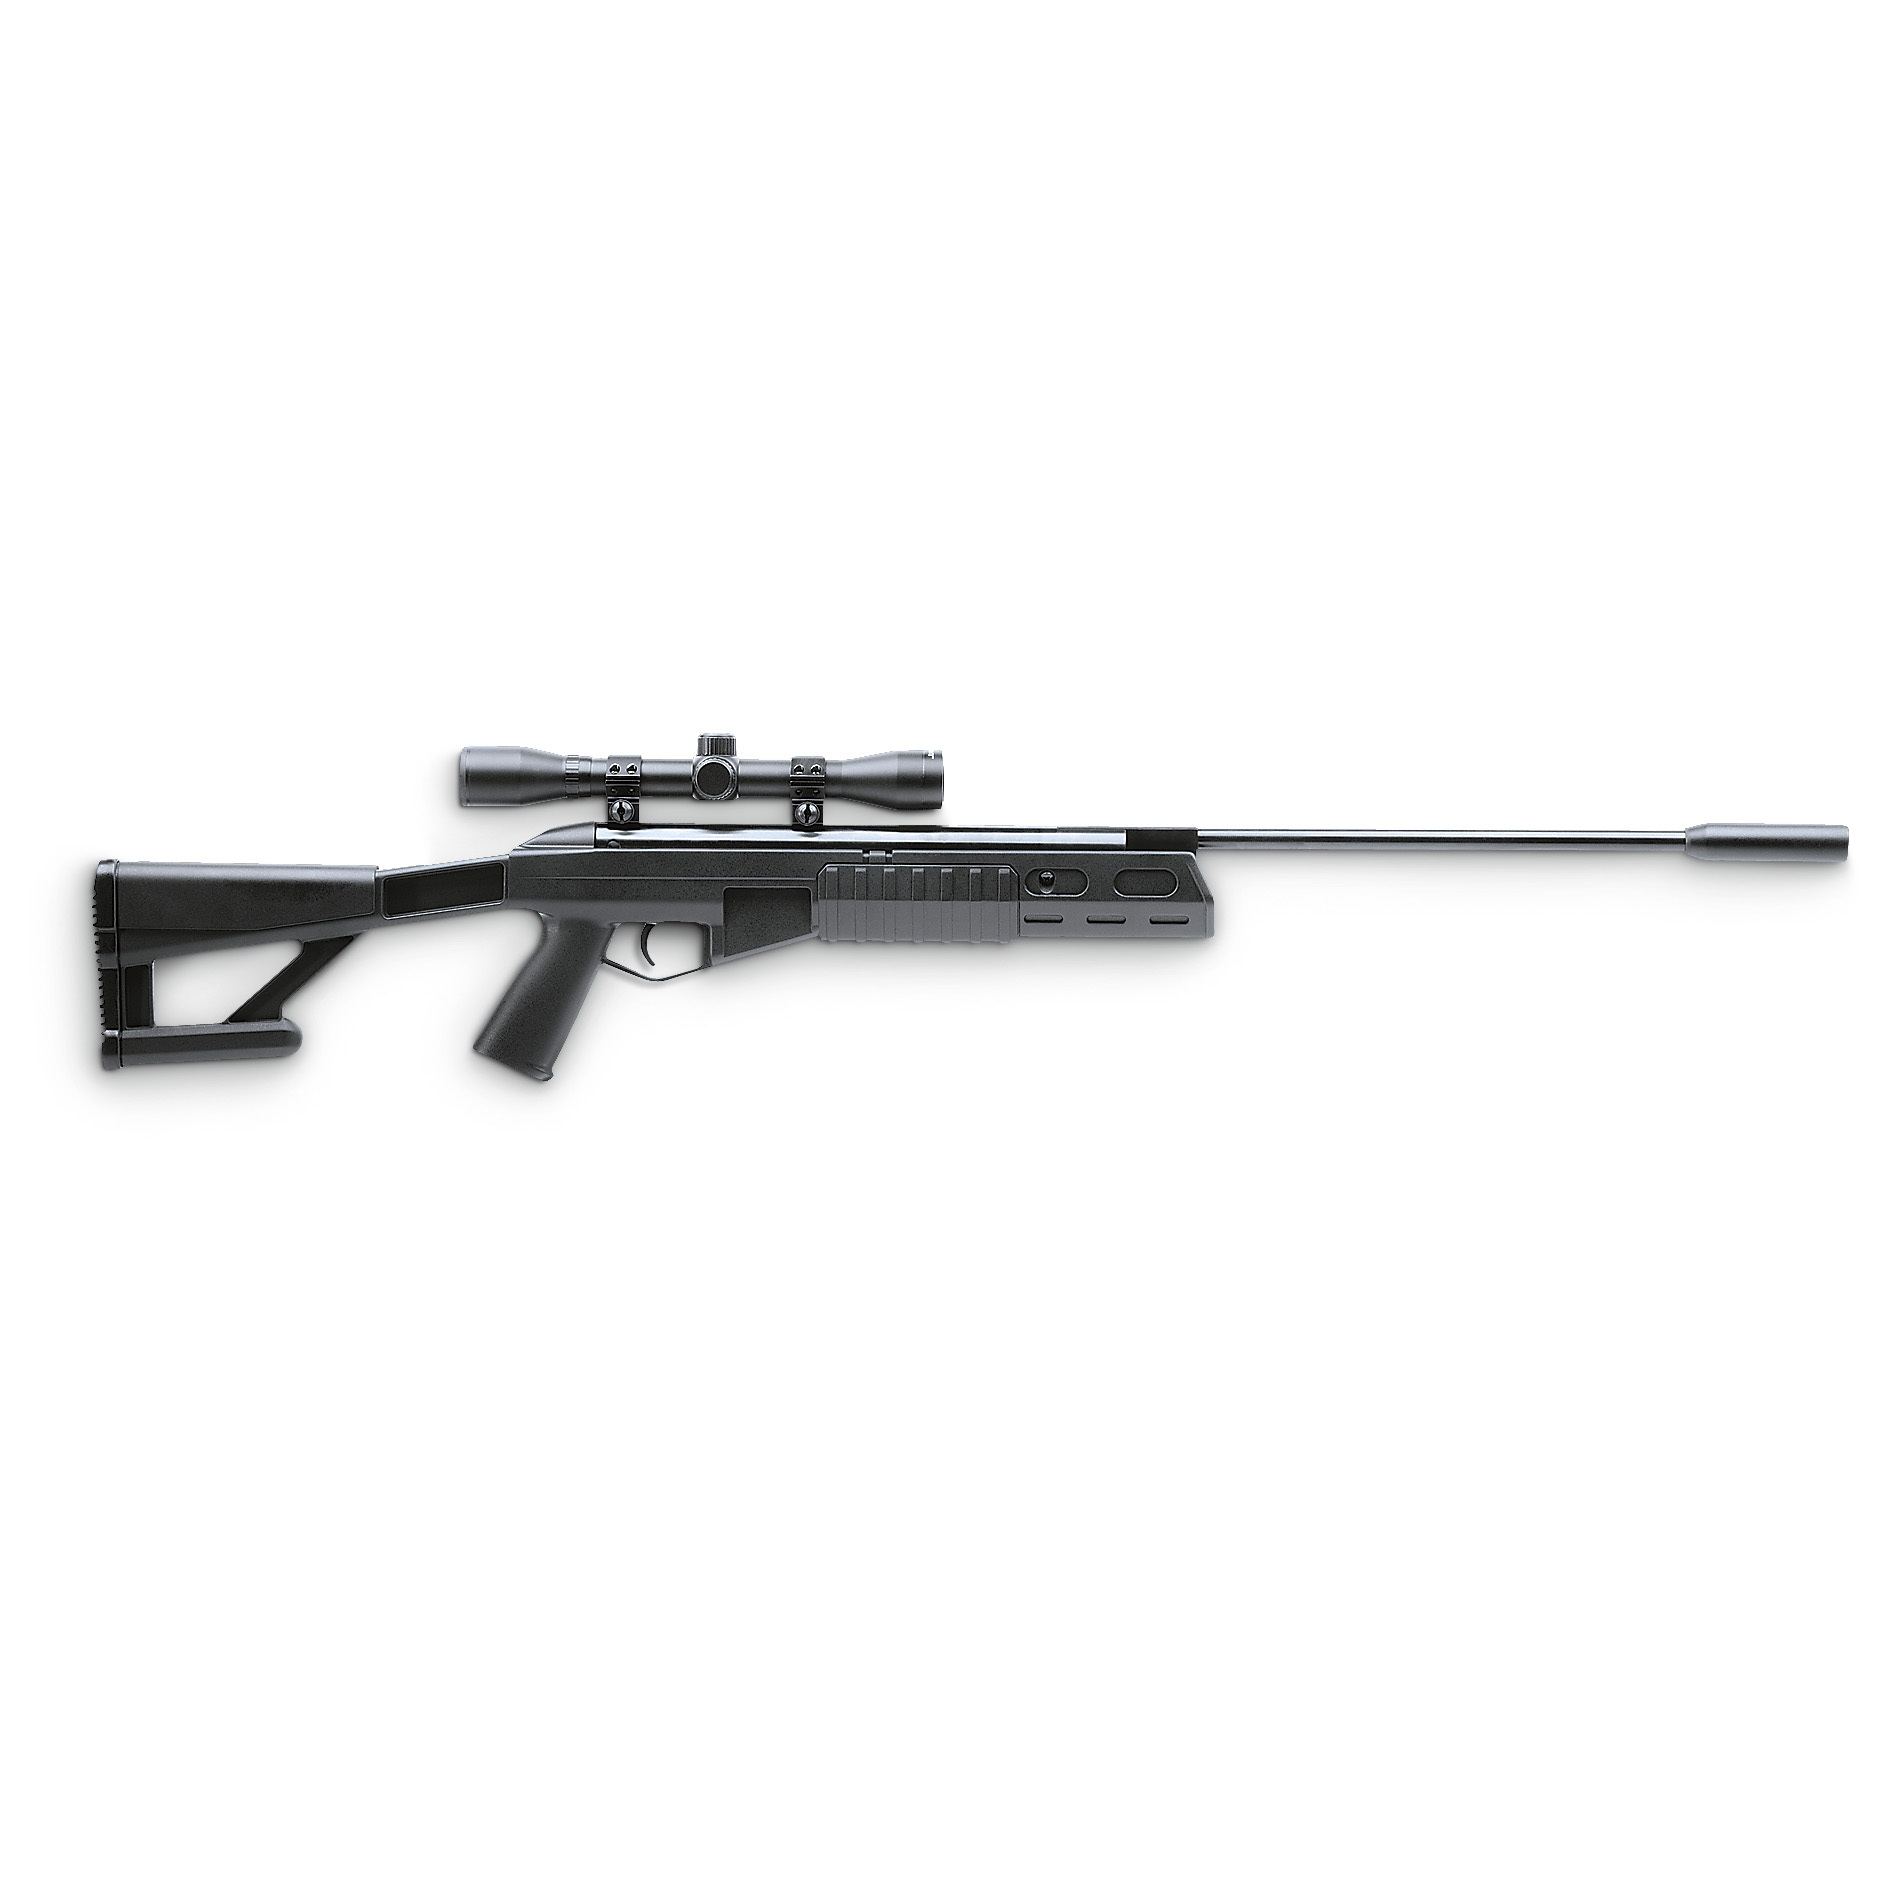 "Crosman .177 cal. Tactical Break-barrel TR77 Air Rifle with 4x32mm Scope delivers up to 1,200 F.P.S. Introducing the crackshot choice! Here's Crosman's Break-barrel Air Rifle with military styling. Complete with an all-weather tactical, openwork synthetic stock. Includes a 4x32mm scope which just begs for you to take it out for paper / tin can target practice! Drop poopy pidgeons and other pests. Even take it small game hunting for sport!Ready to rock:2-stage adjustable trigger Pistol grip and forearm are designed for comfort, stability Single shot action Accurate 4x32mm optics Safety lever 15""l. rifled barrel. Weighs 7 lbs. !!! Limited Quantities !!! - $79.99"